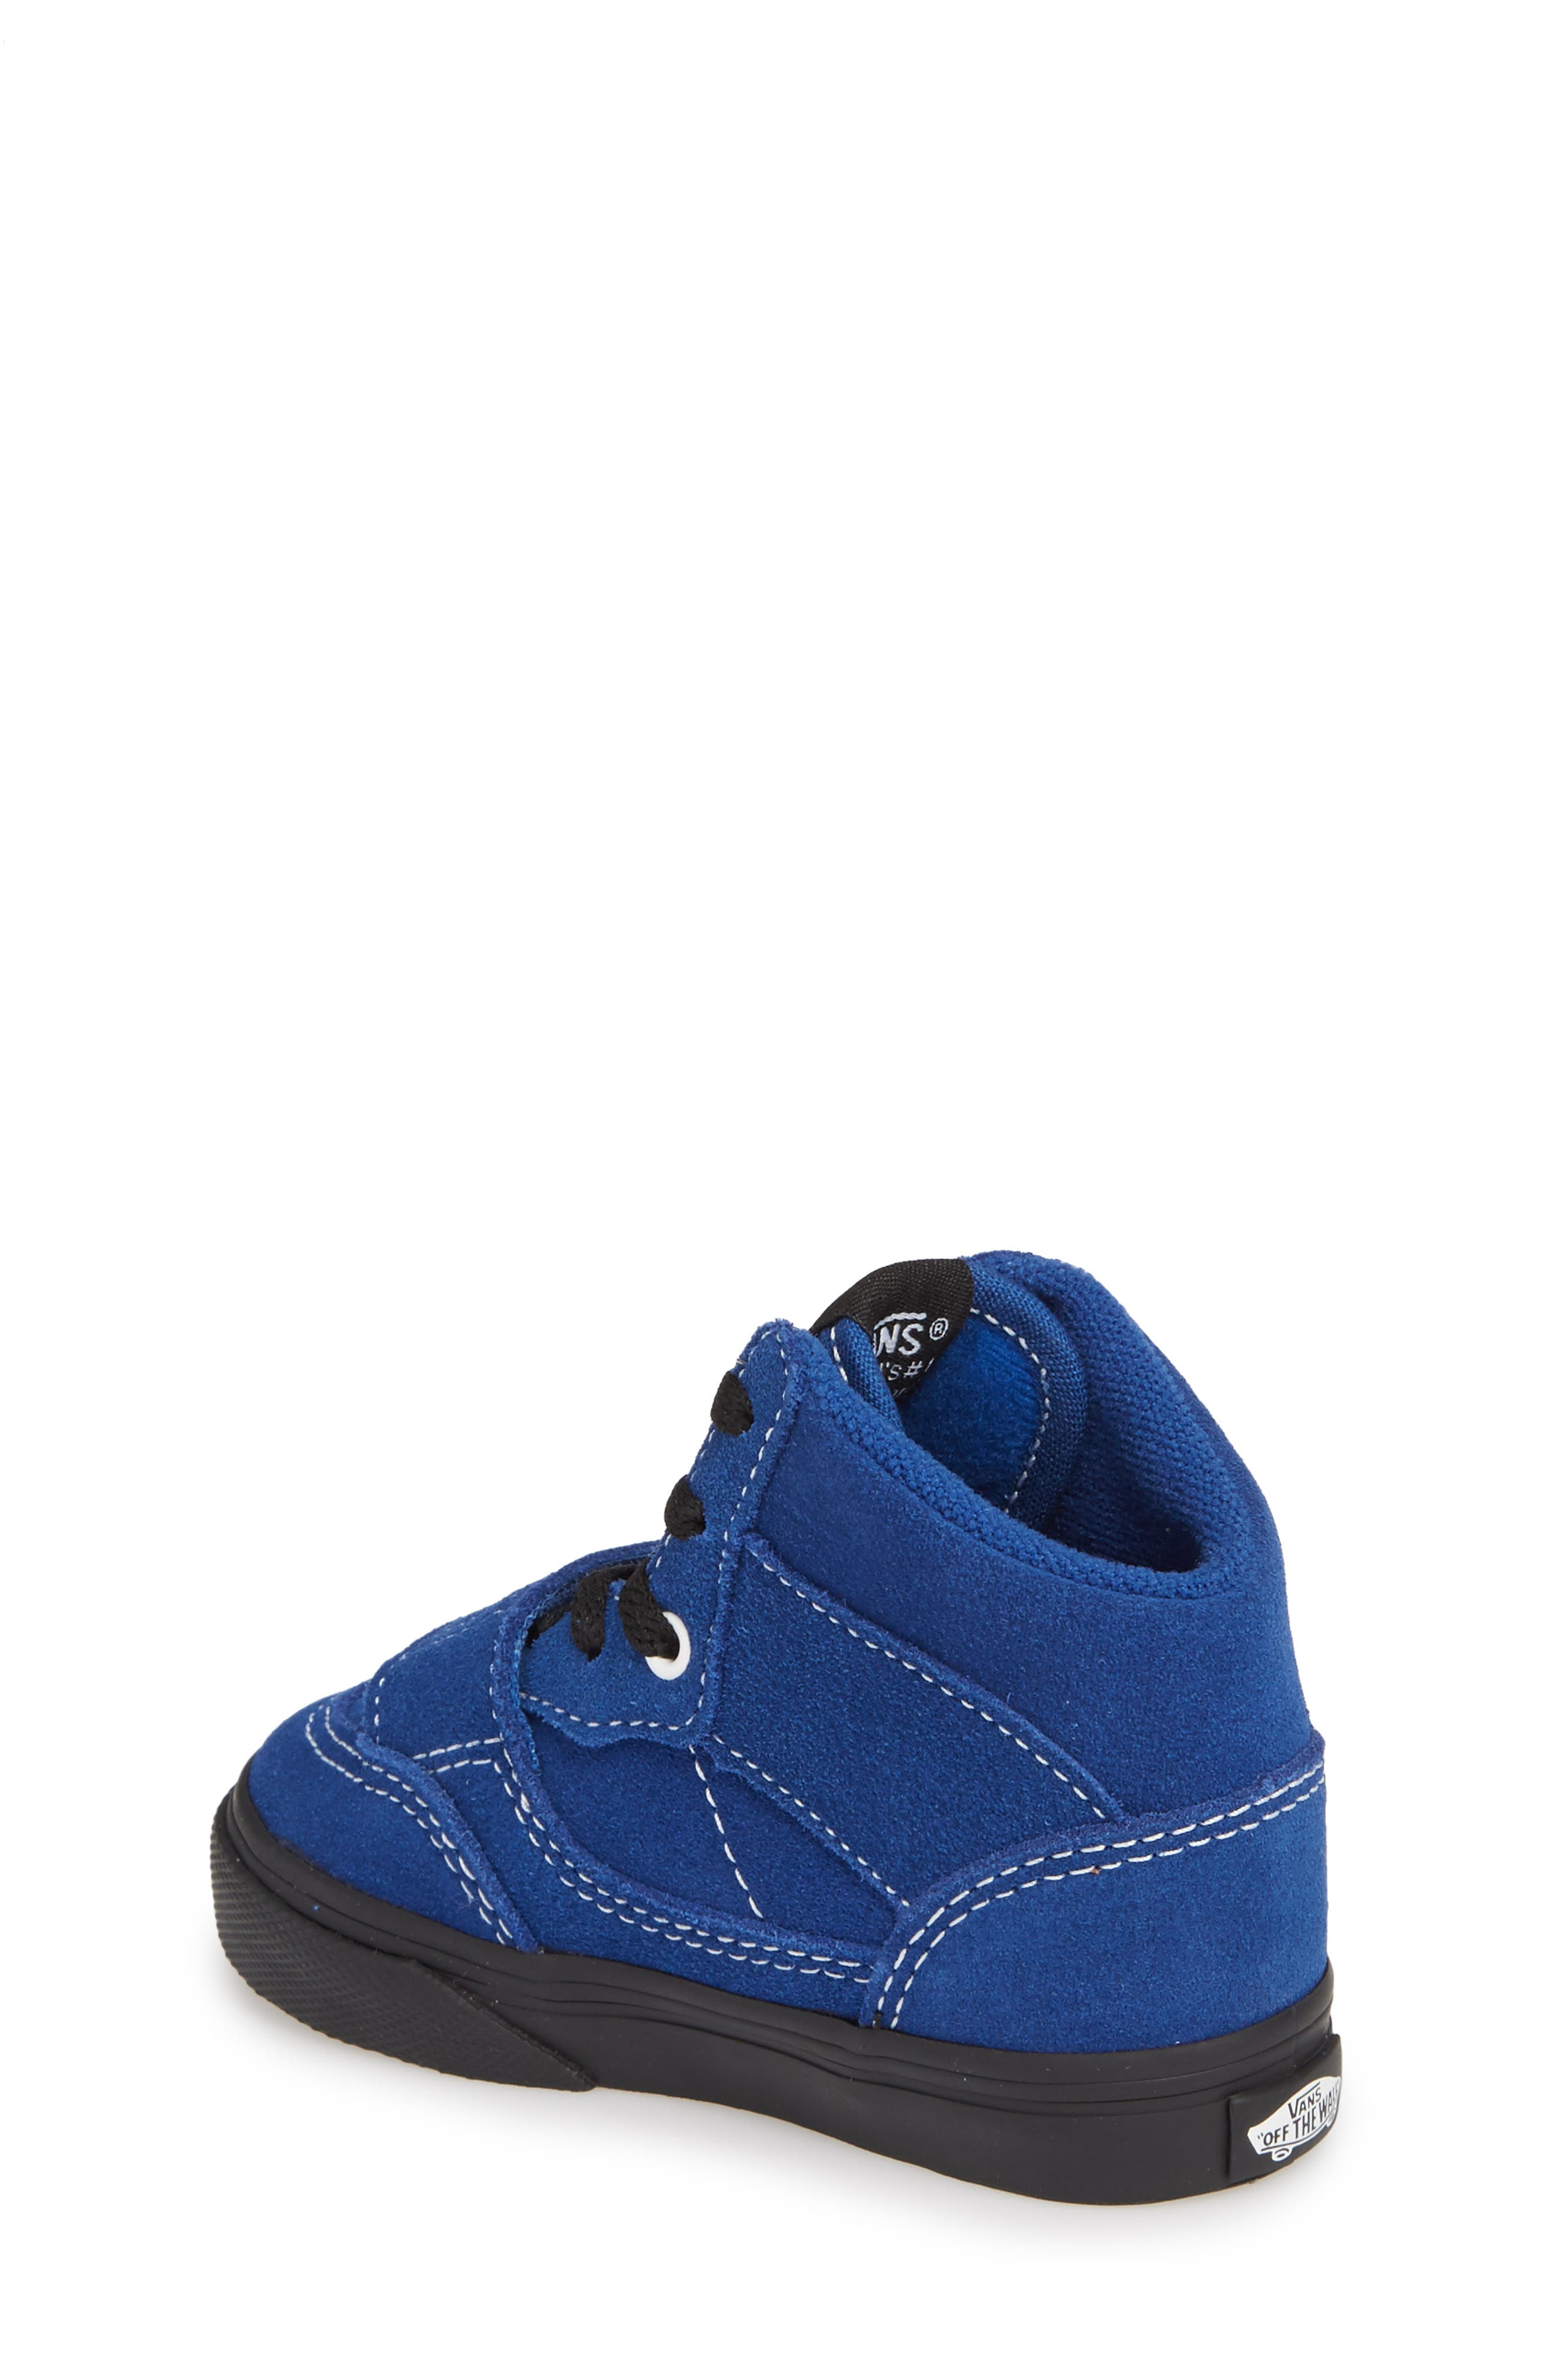 Mountain Edition Mid Top Sneaker,                             Alternate thumbnail 4, color,